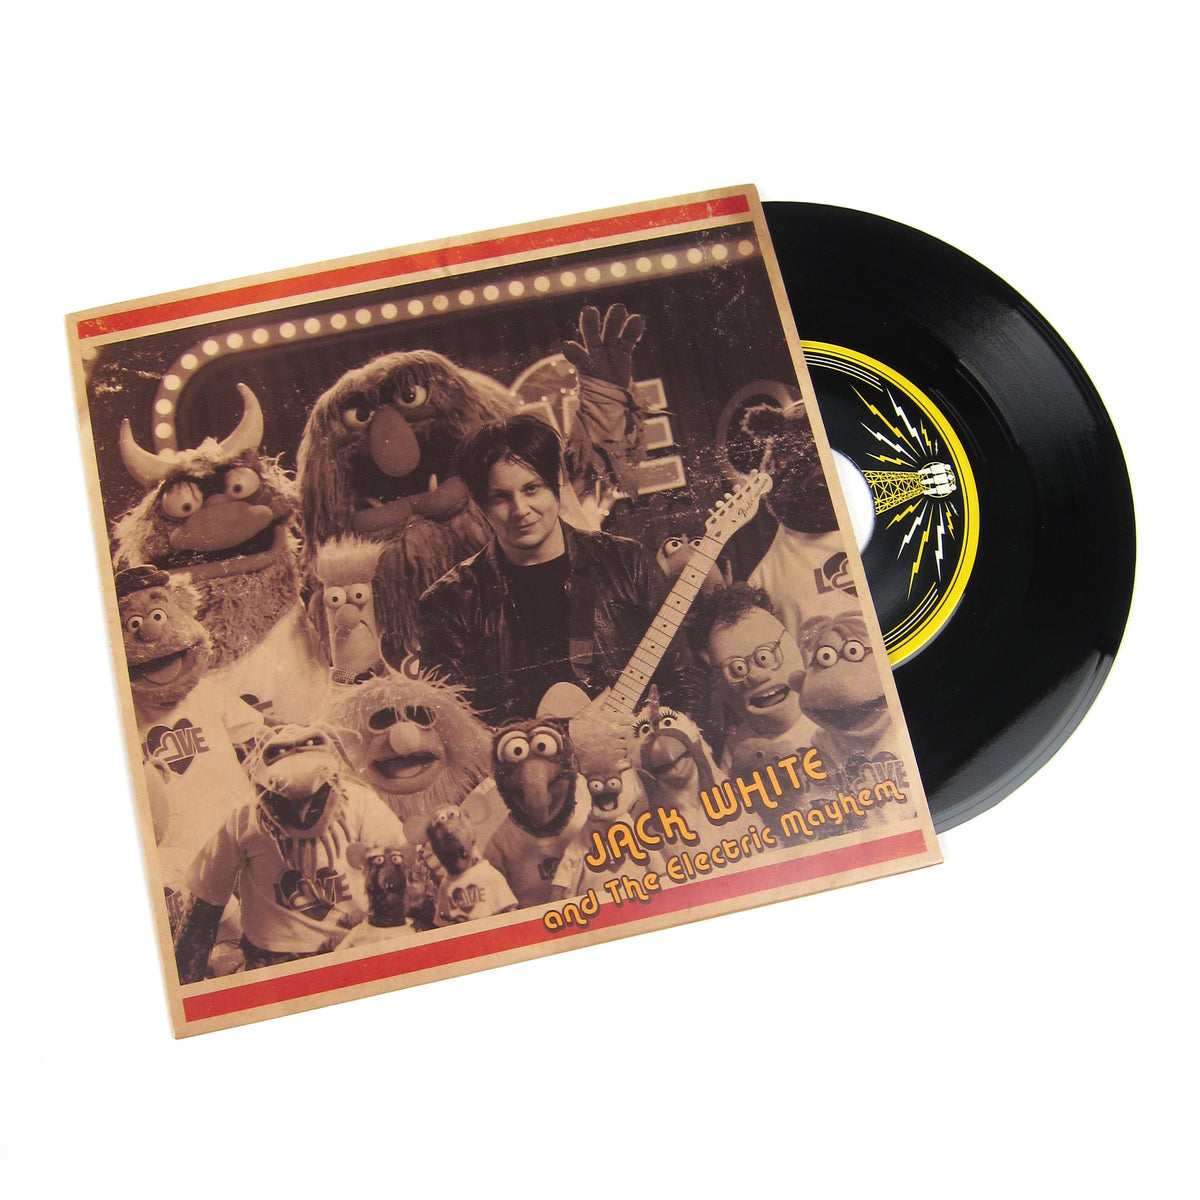 Jack White And The Electric Mayhem: You Are The Sunshine Of My Life (The Muppets) Vinyl 7""